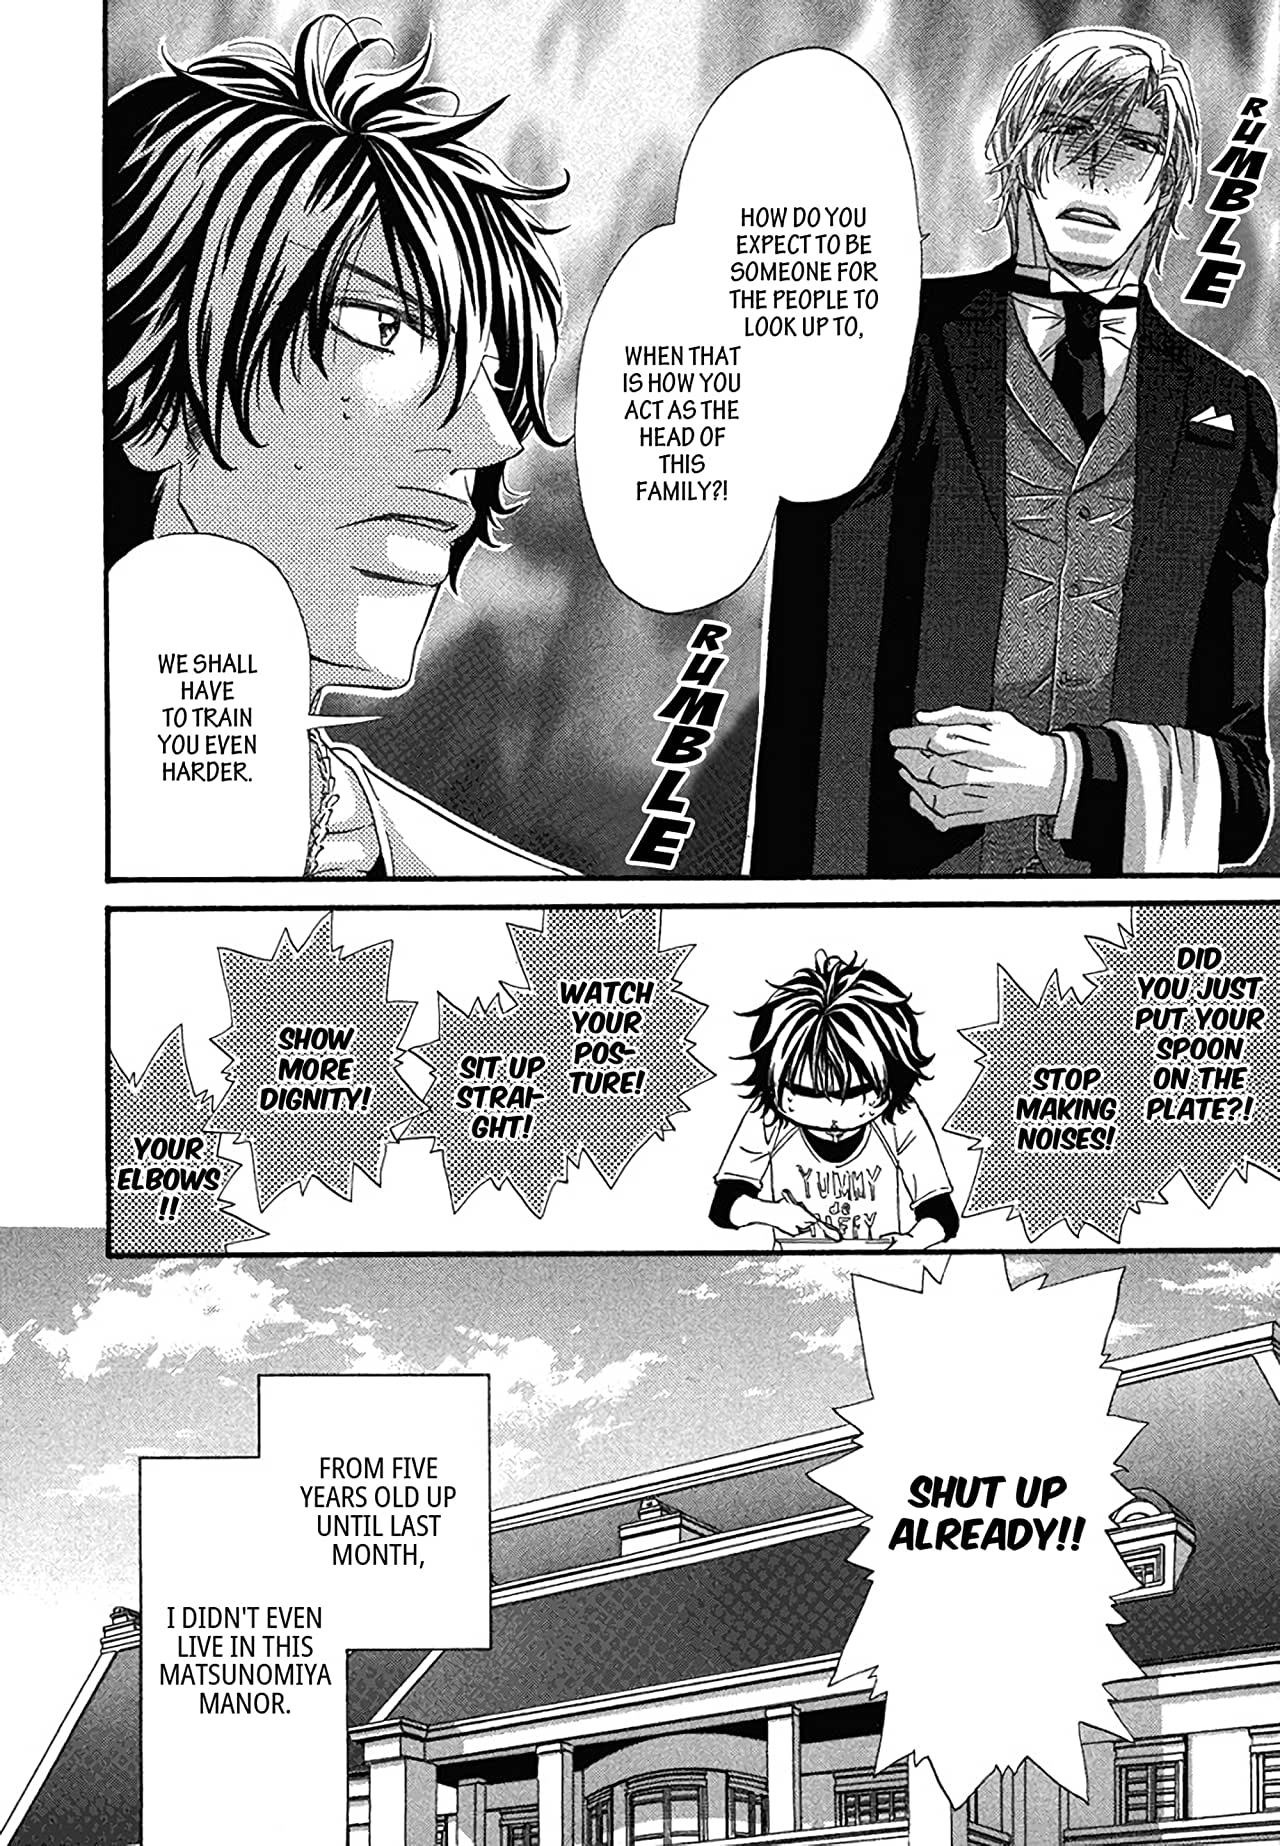 Just For The Butler (Yaoi Manga) Vol. 1